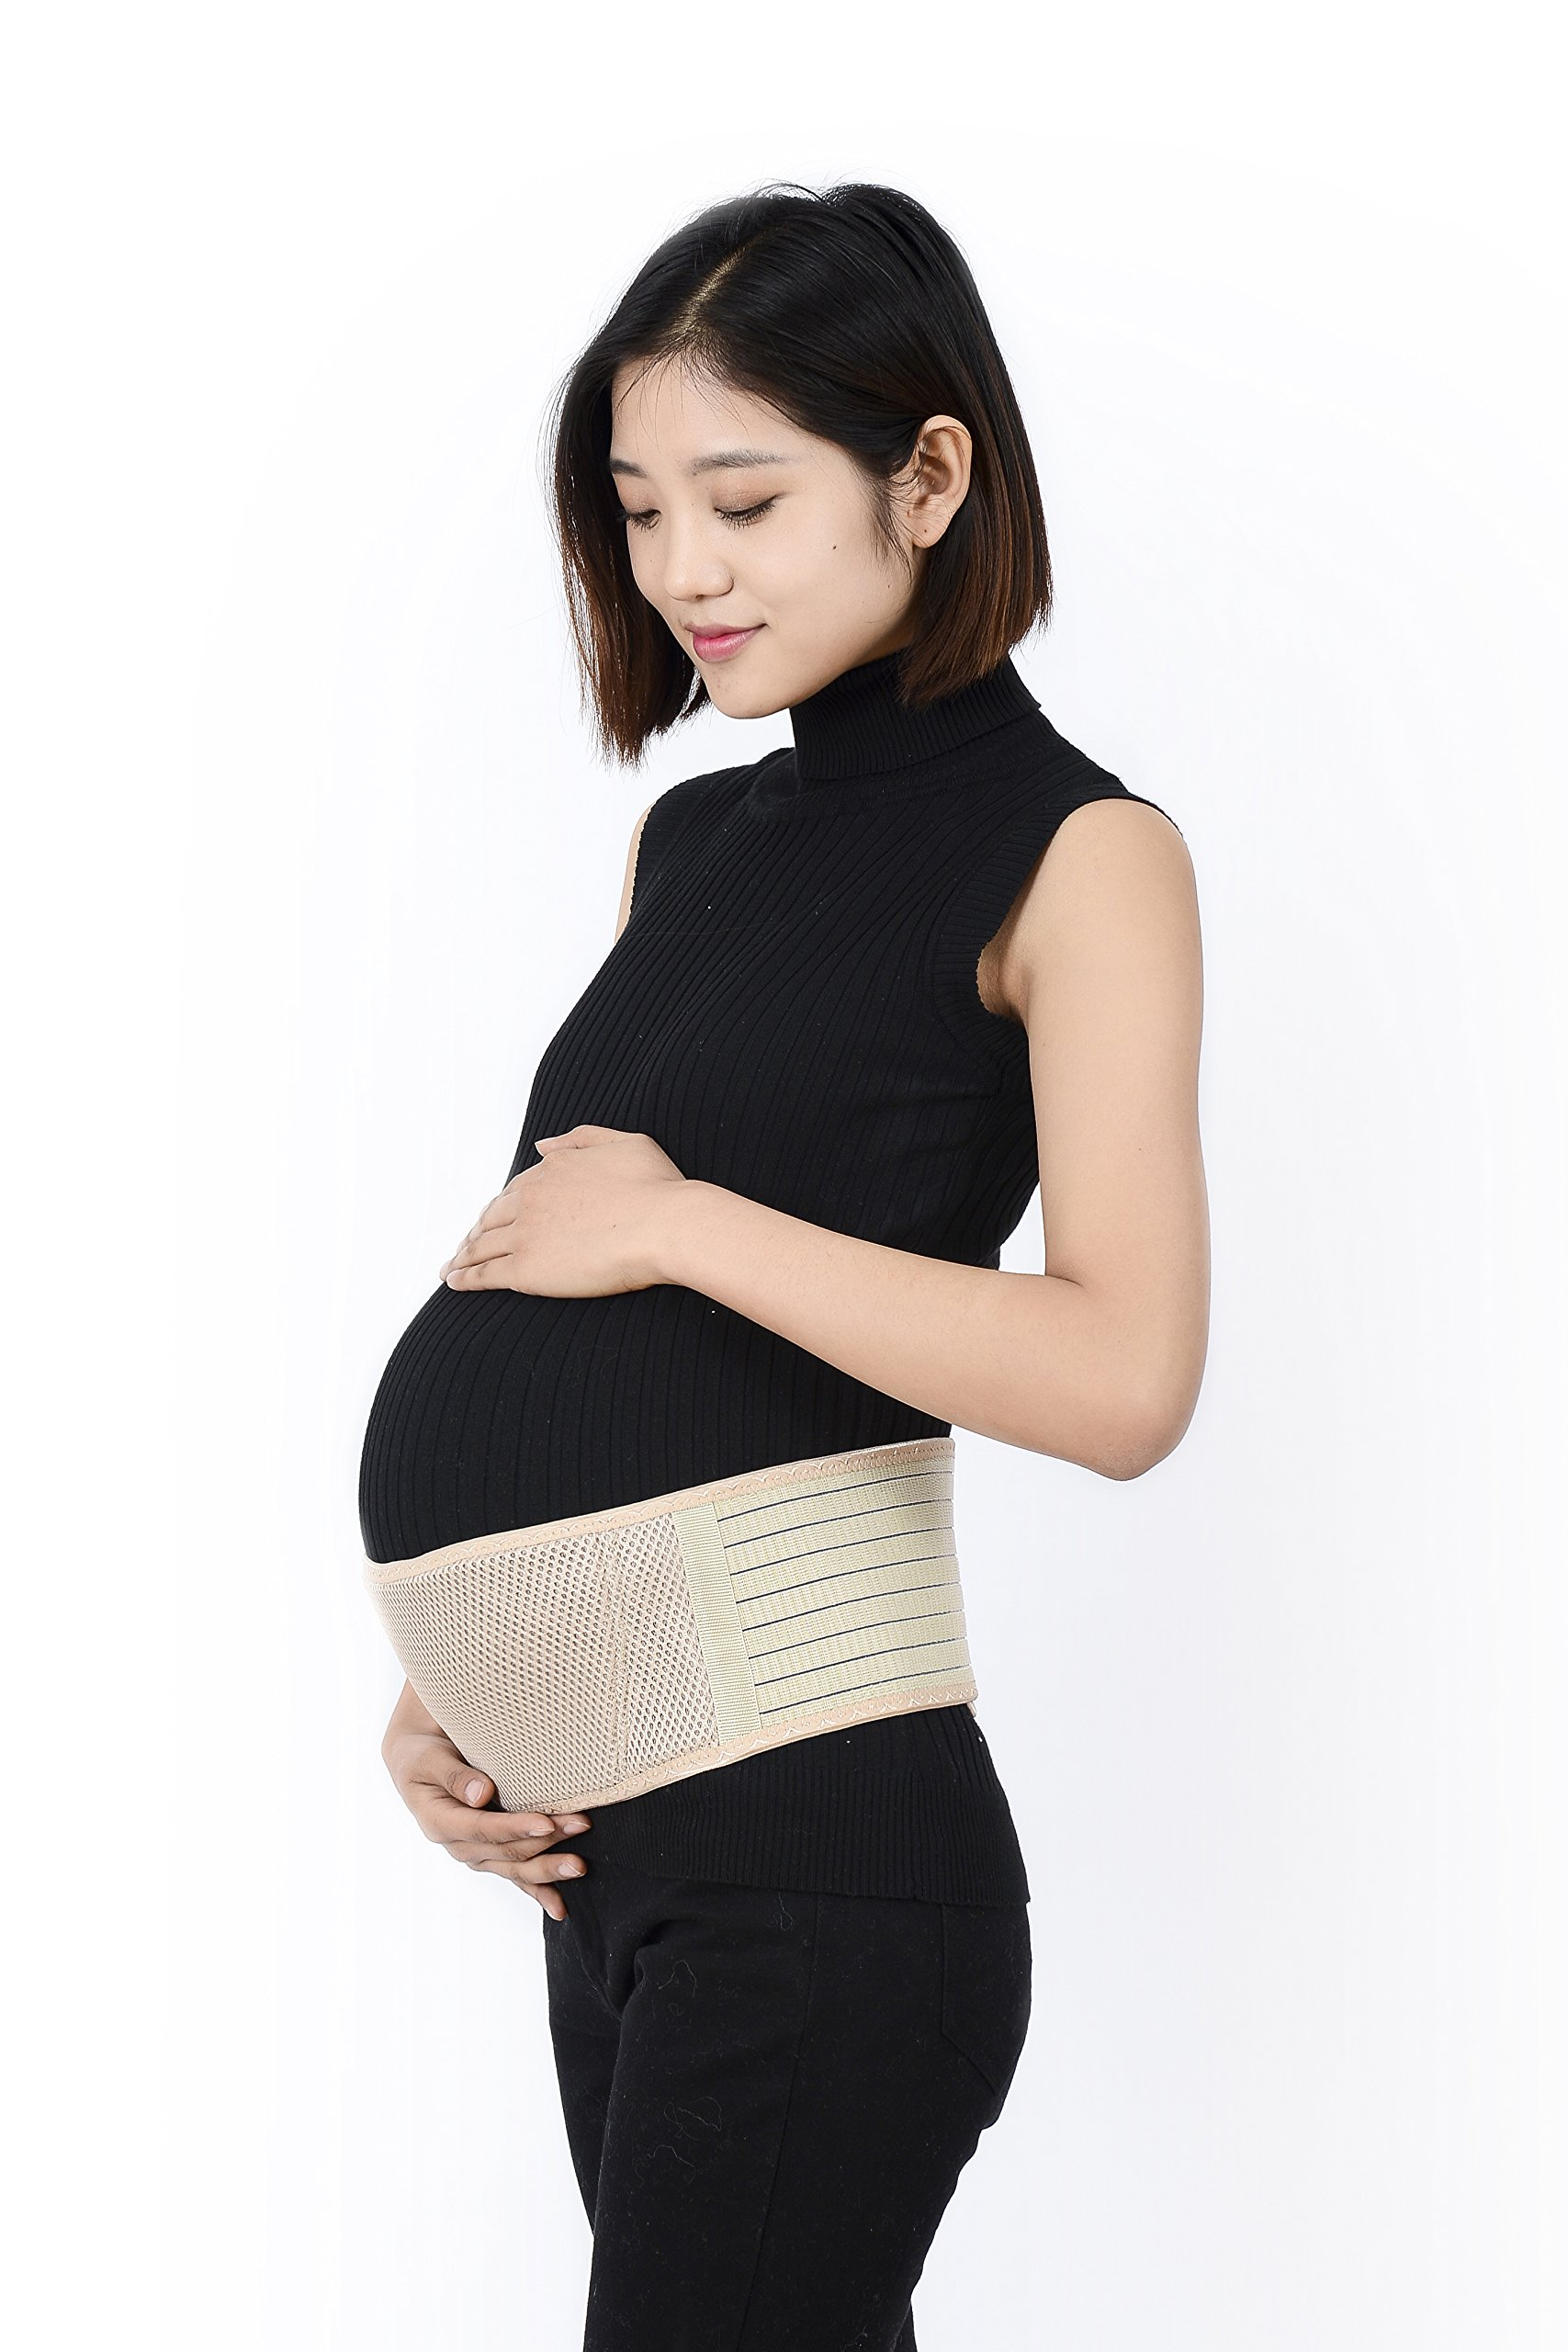 Maternity Pregnancy Belt by Zapdaba - Soft Breathable Abdominal Binder - Premium Quality Belly Band - Relief from Lower Back, Pelvic, Hip and Sciatica Pain. One Size, Nude.